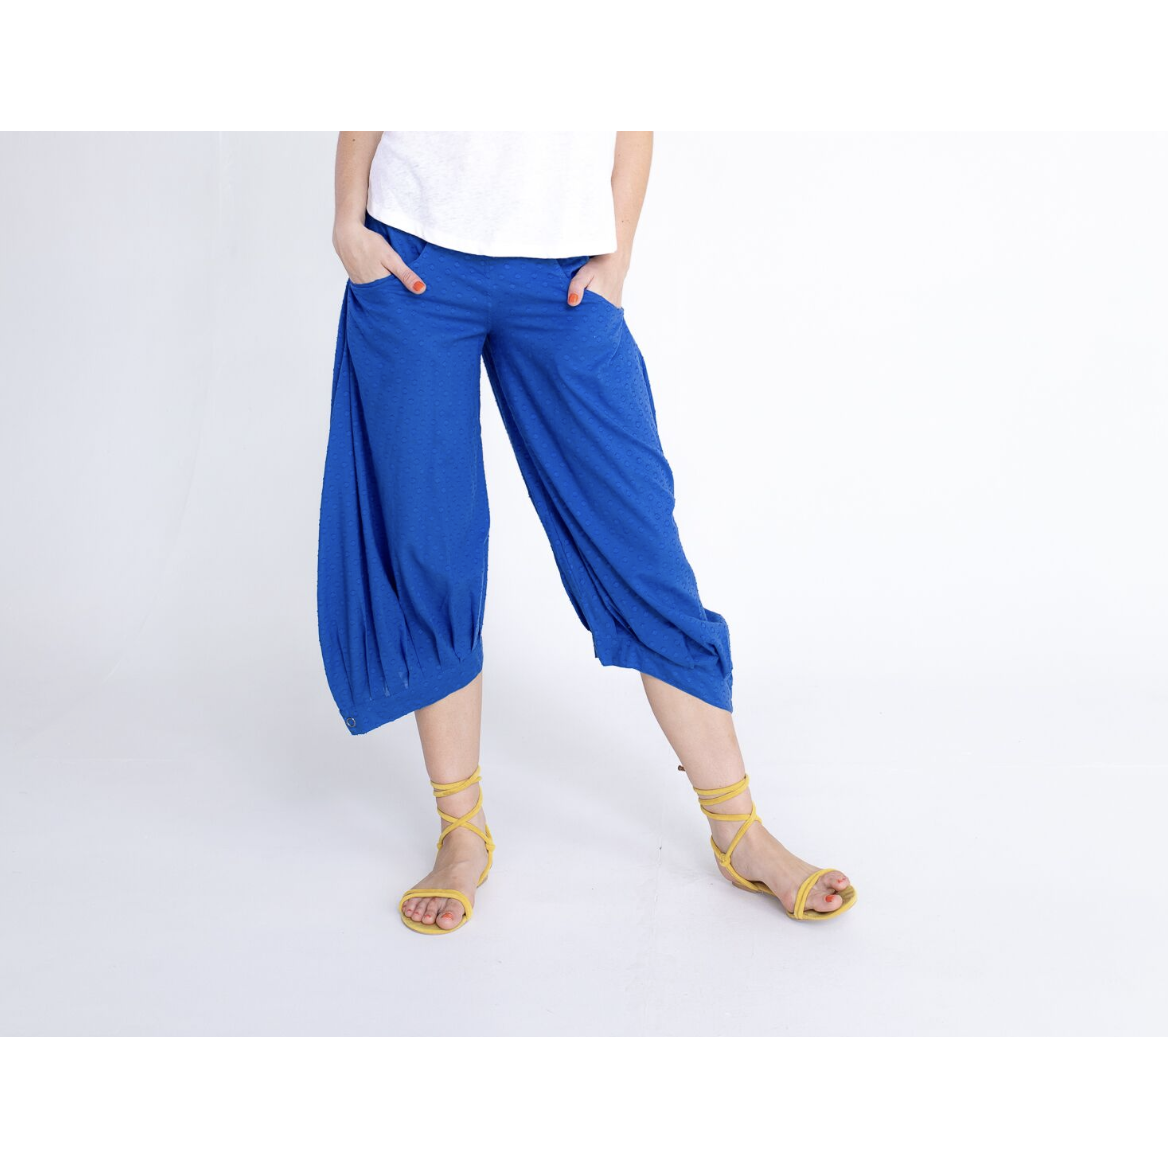 Boom Shankar Guru Pants in Cobalt Blue